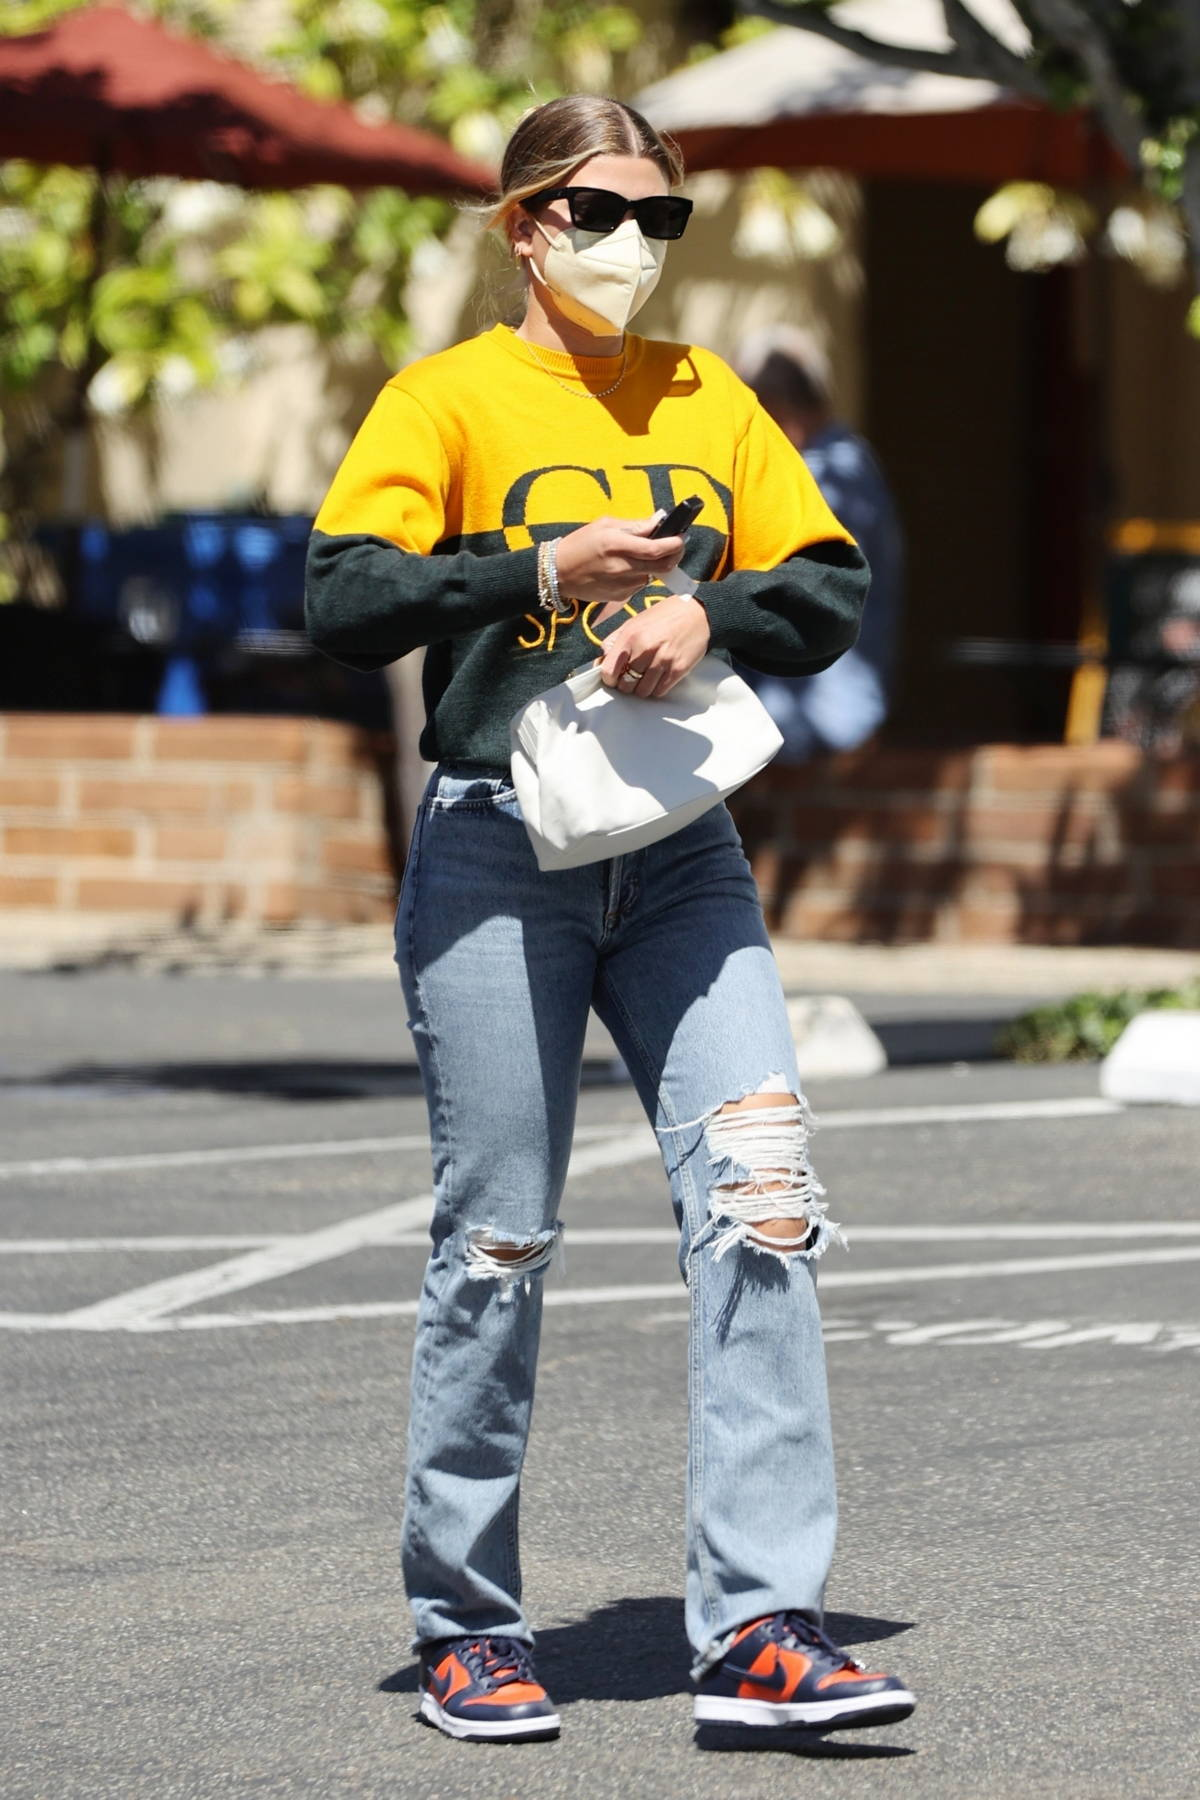 Sofia Richie sports a two-toned sweatshirt and ripped jeans while running errands around Santa Barbara, California